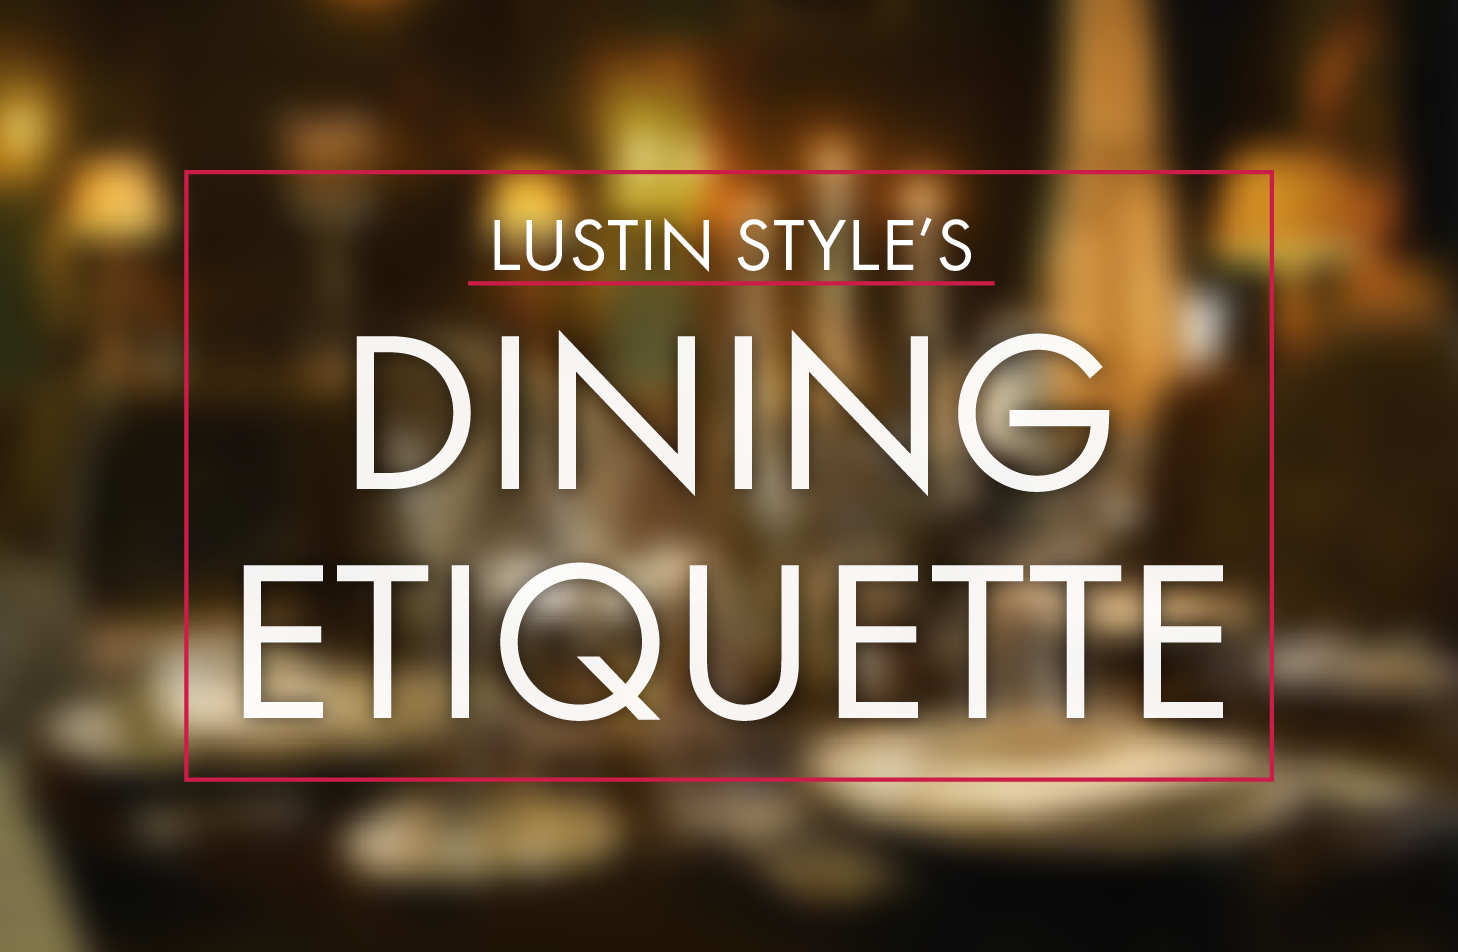 Dining Etiquette by Lustin Style